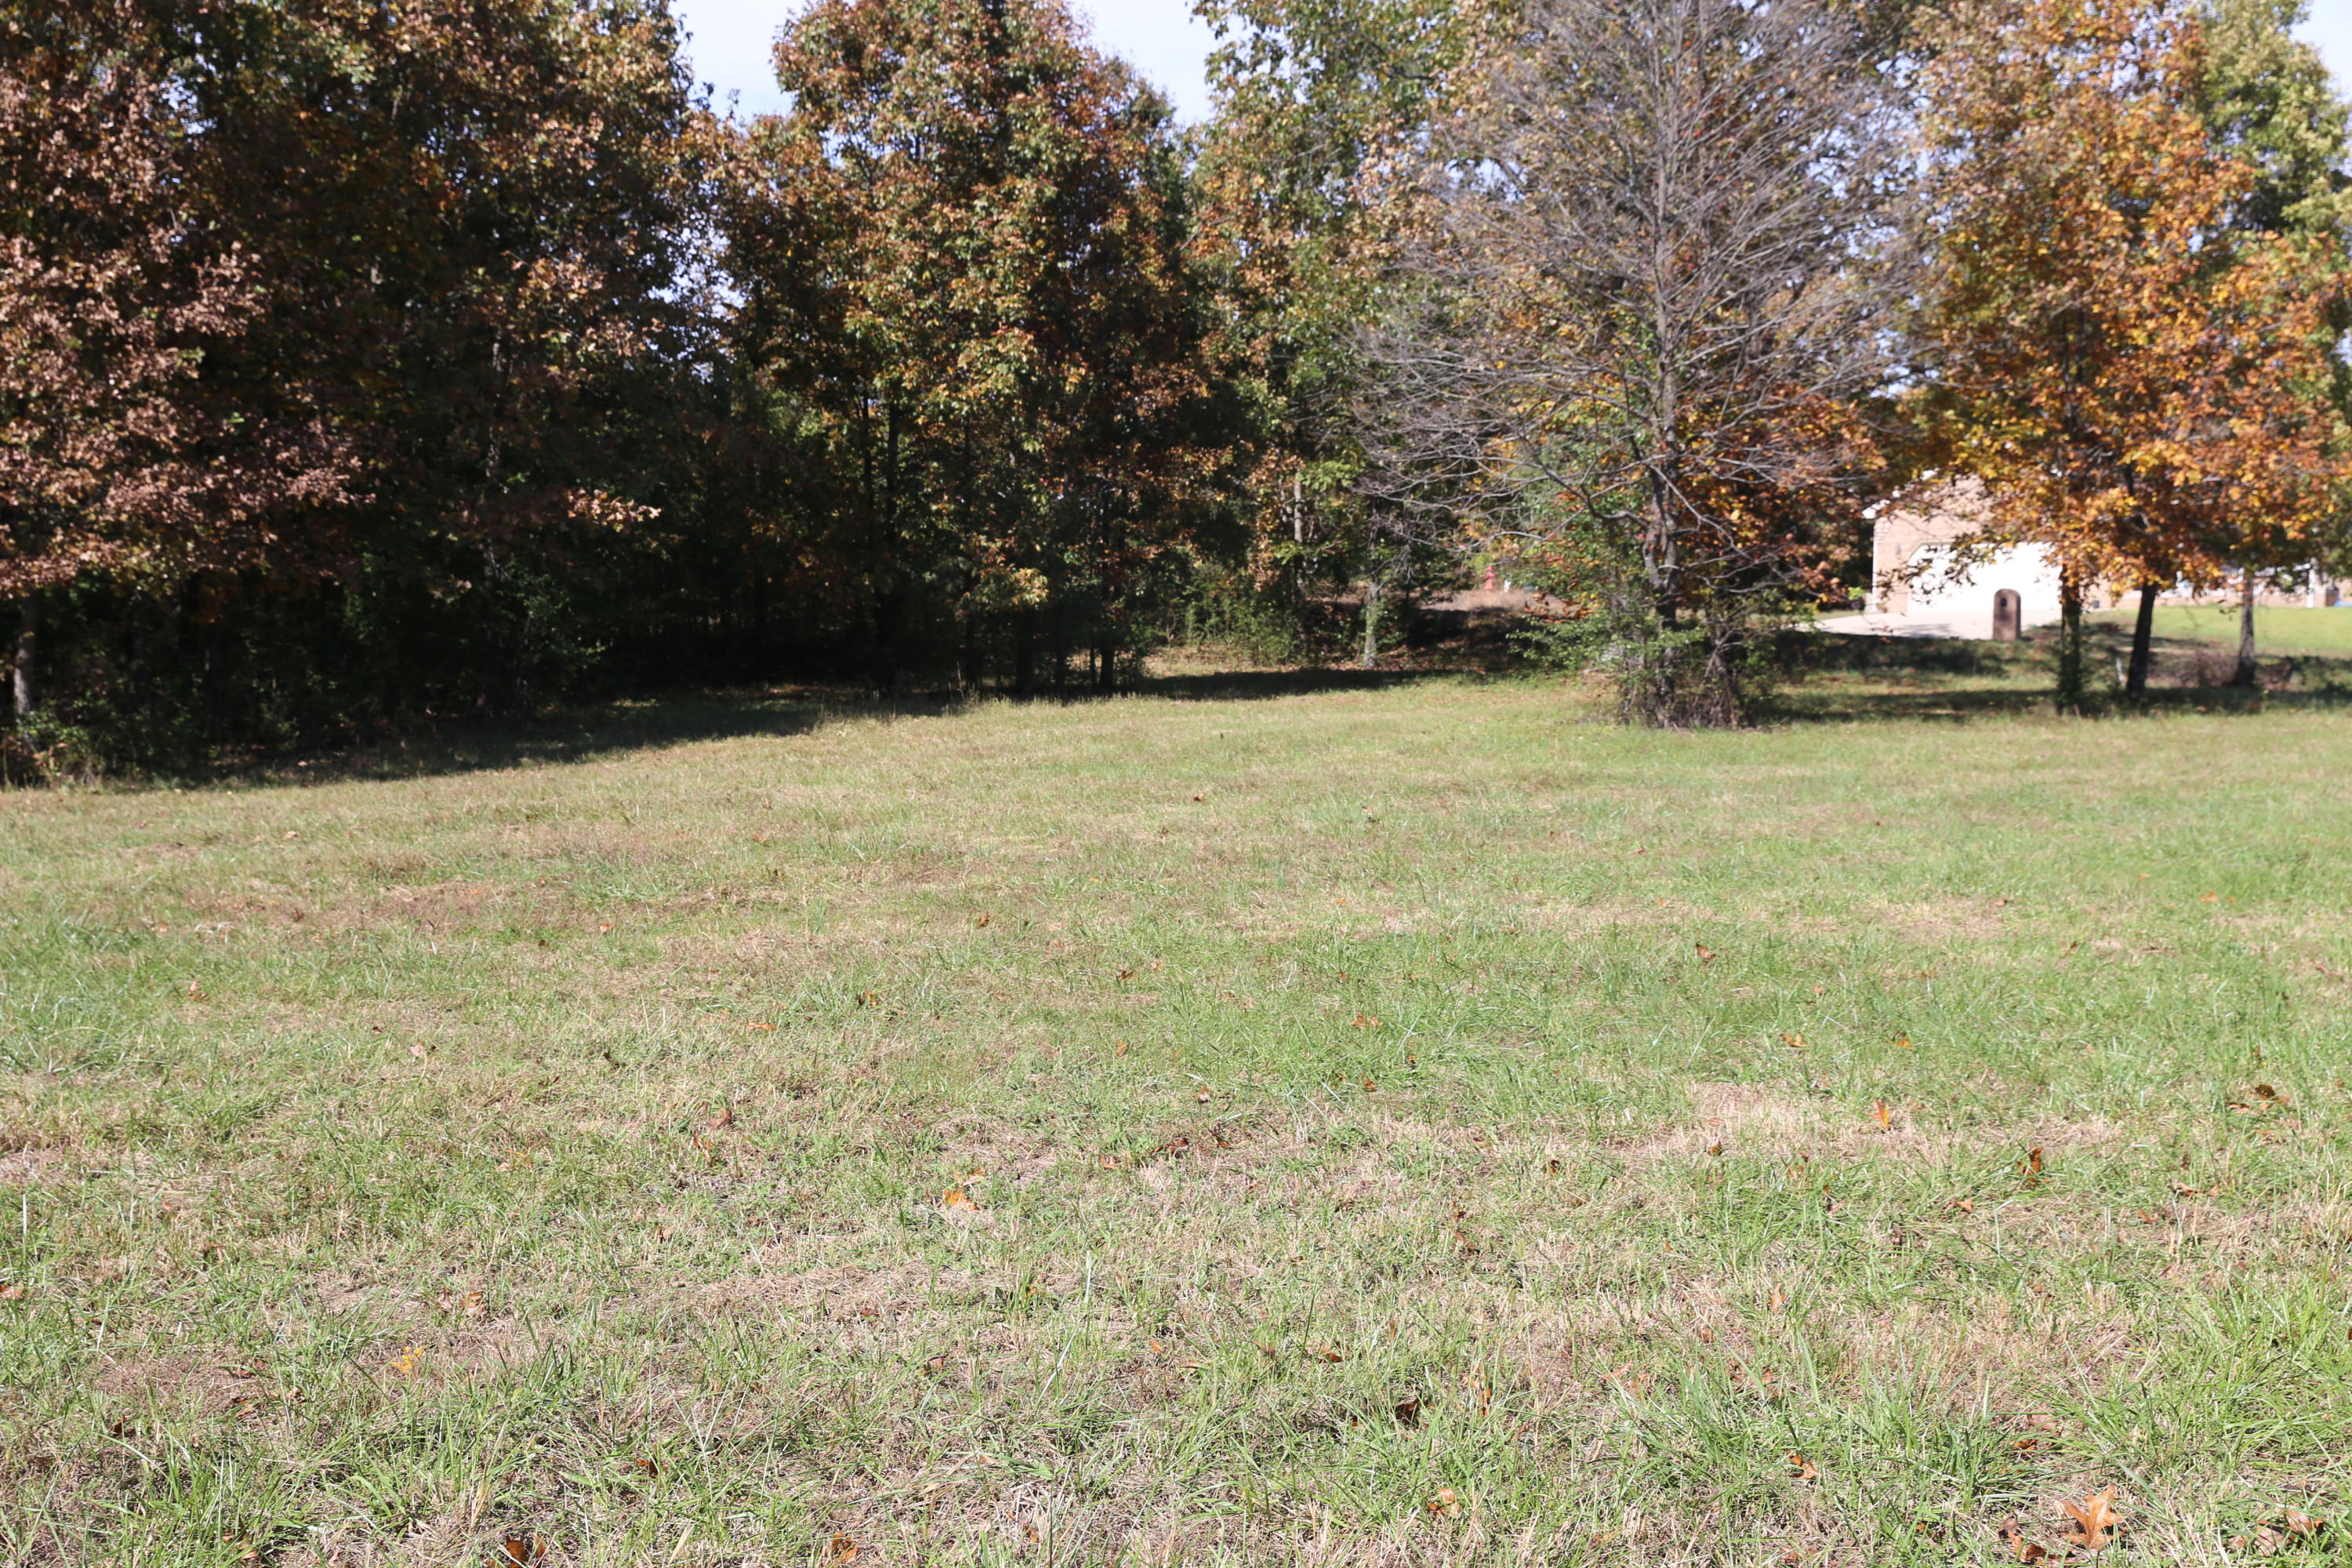 000 Wild Turkey Road Block 1 Lot 9 Property Photo